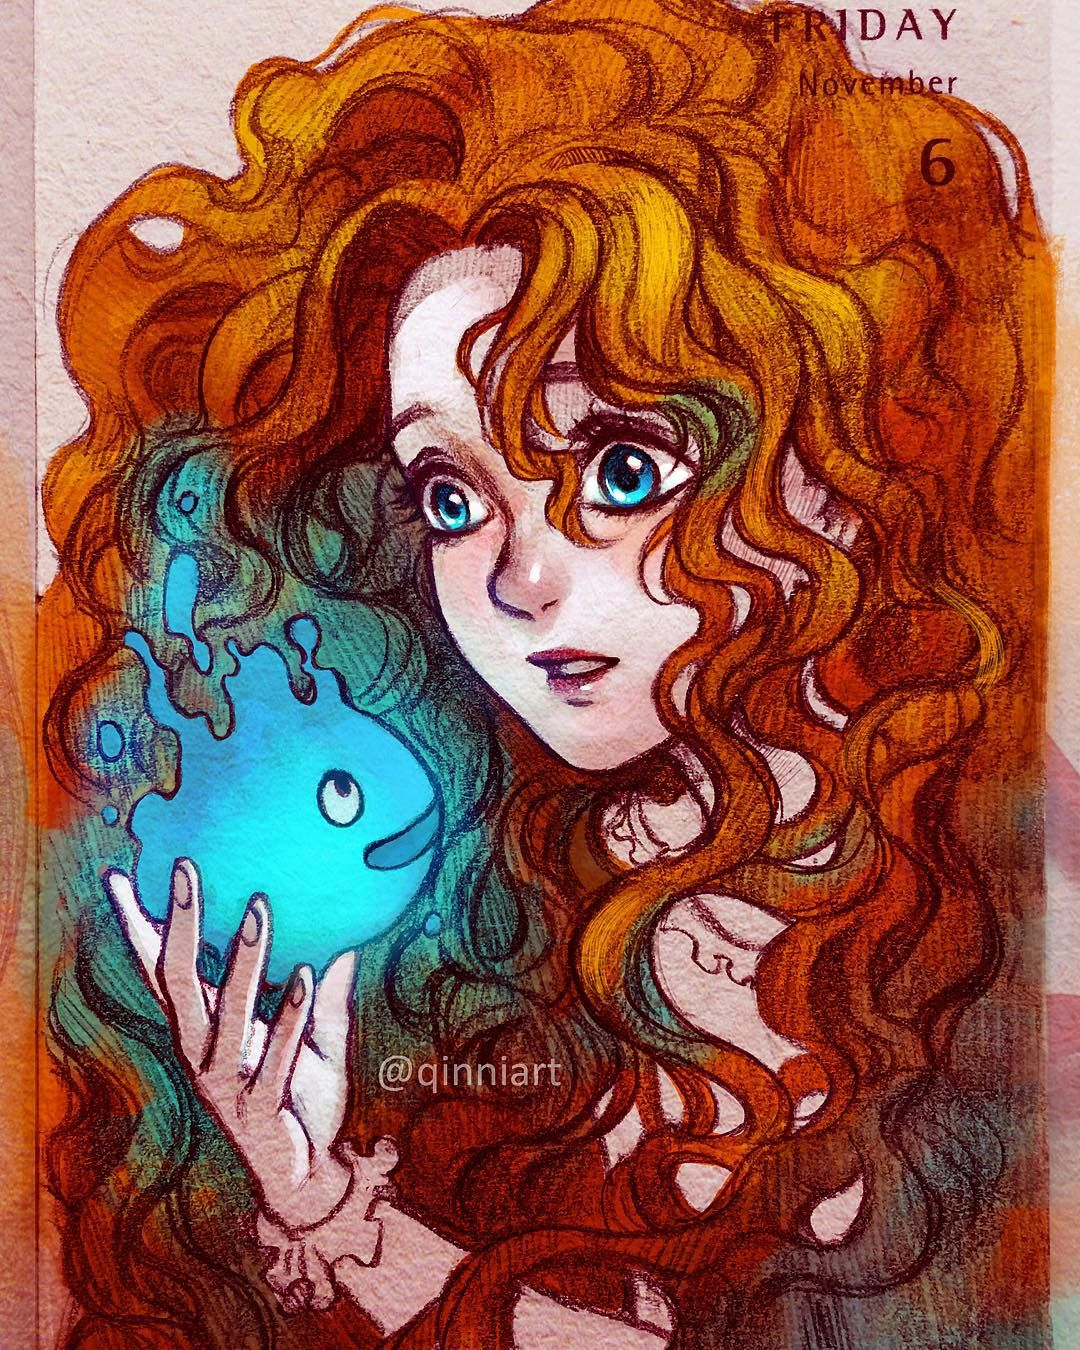 Uncategorized Merida Drawings i was sketching merida and then got to thinking that the will o wisps